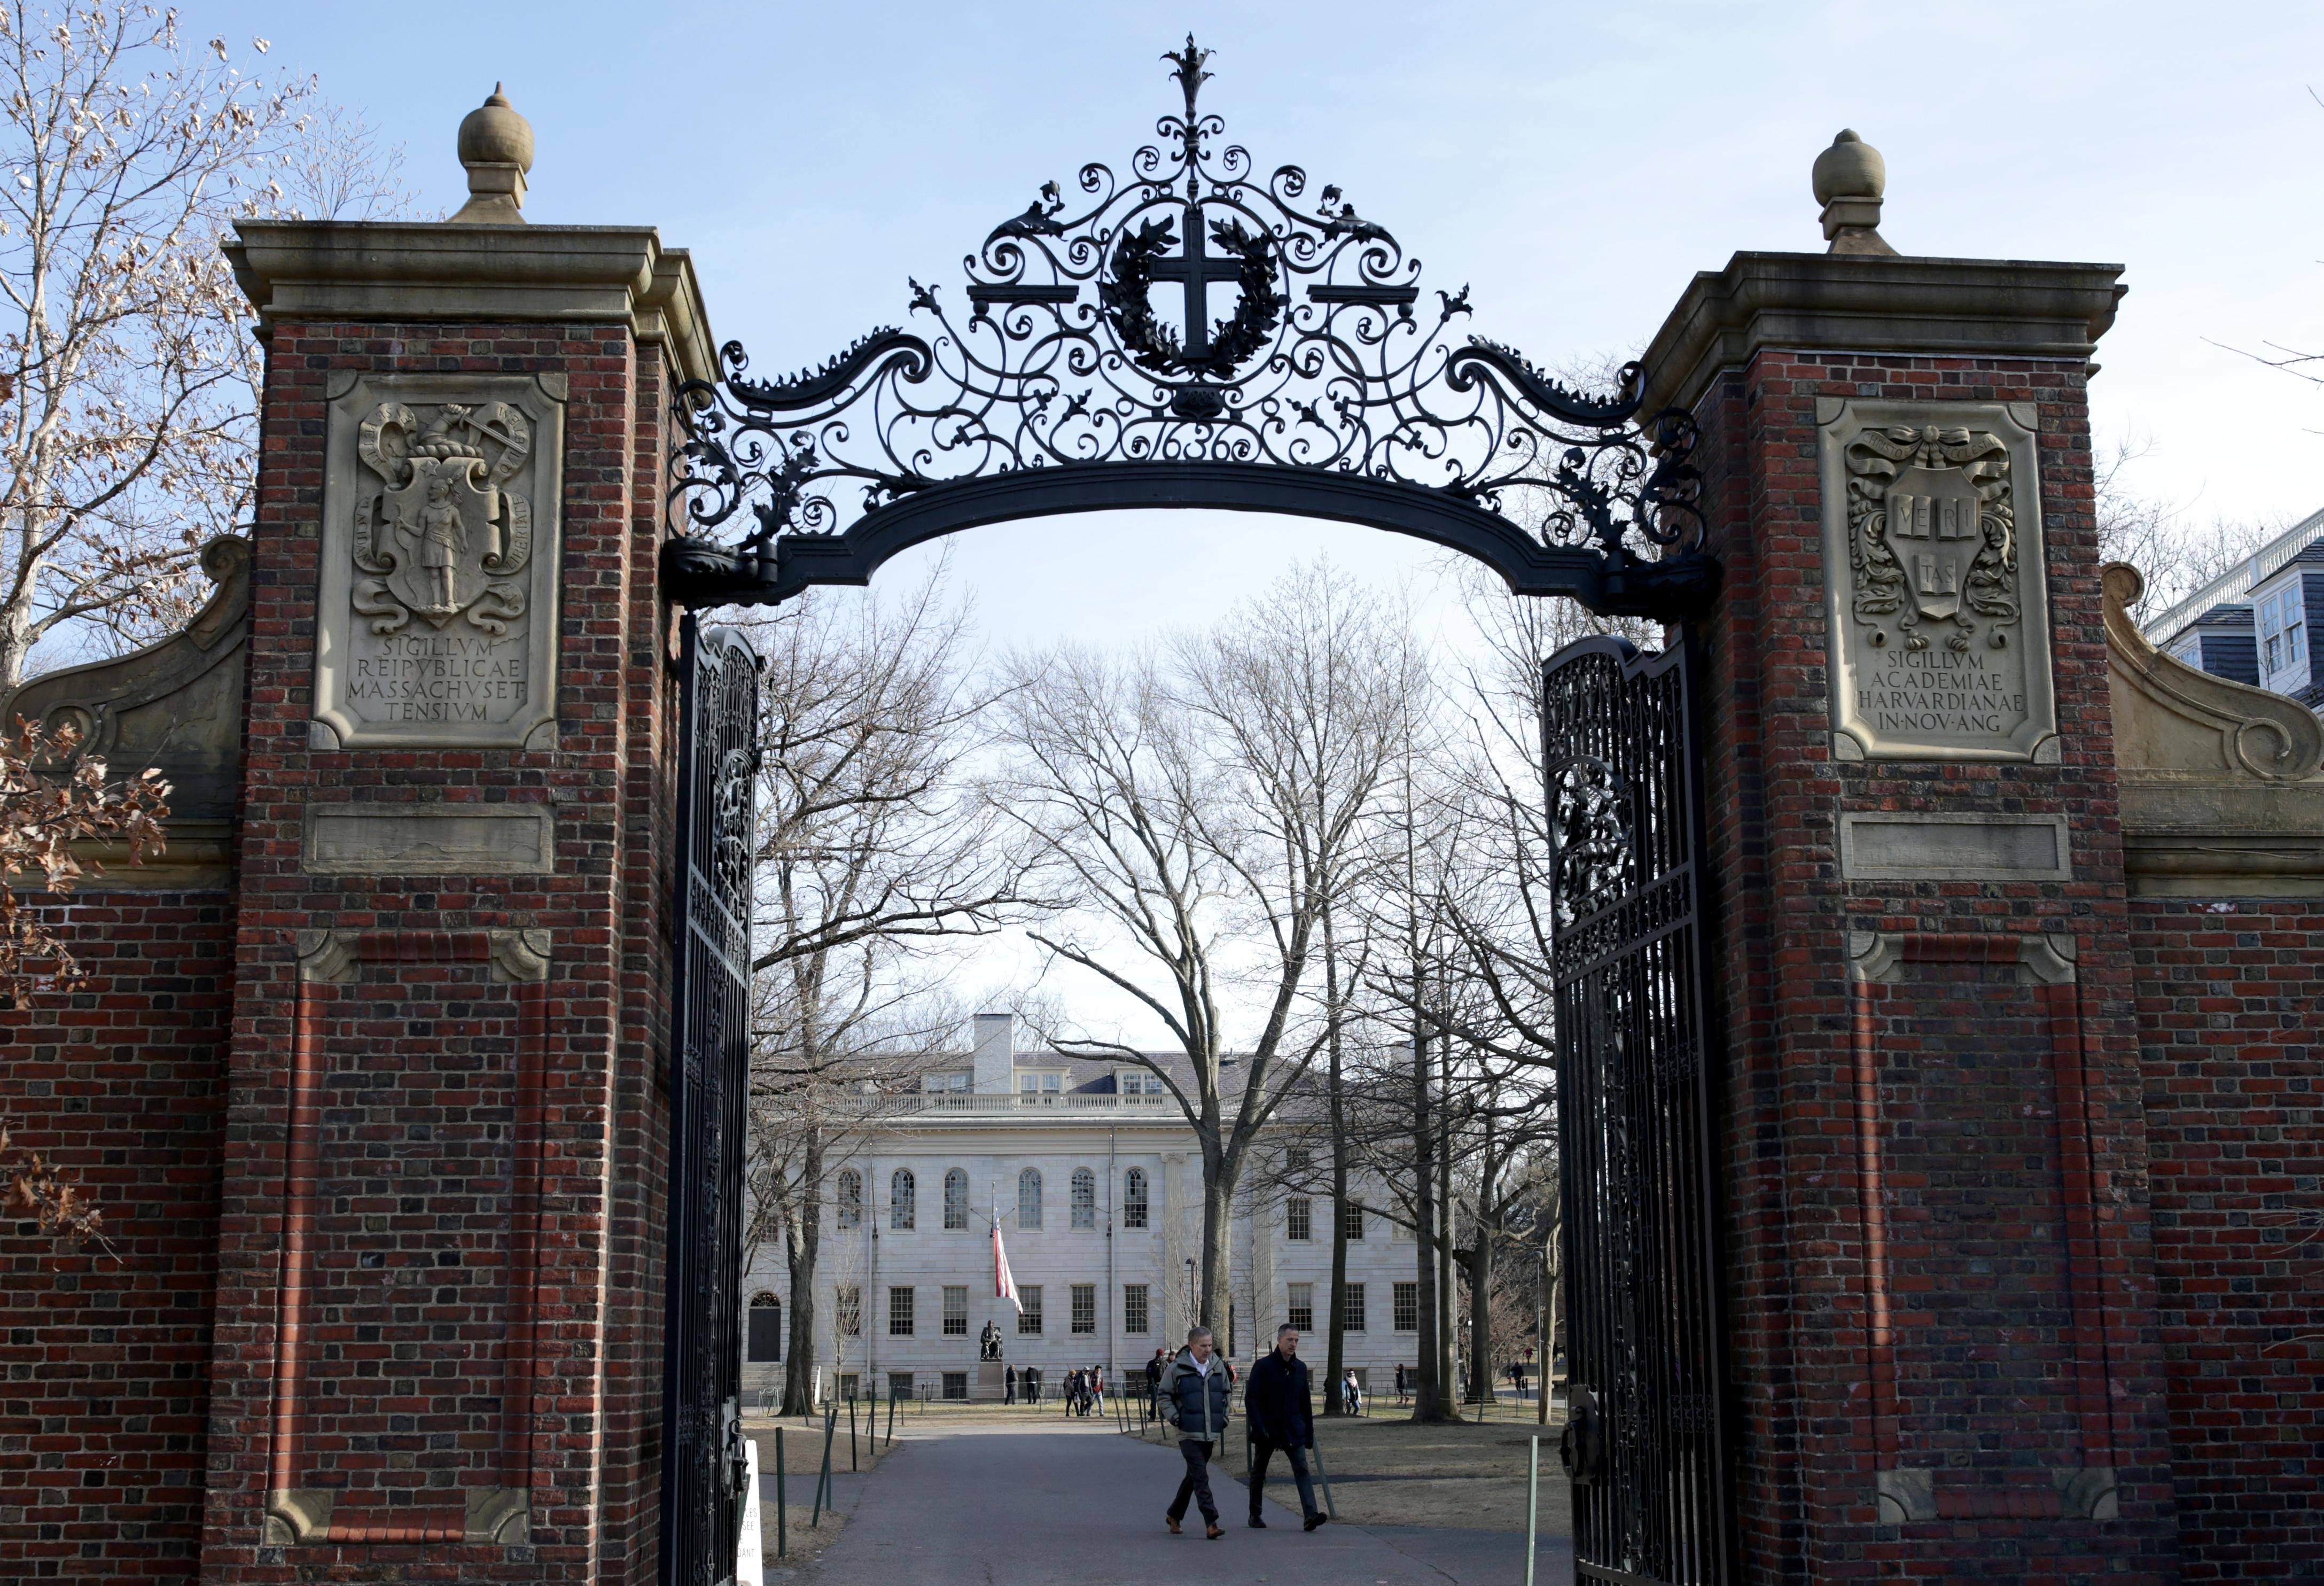 It's not just corruption. Entrance into elite US colleges is rigged in every way